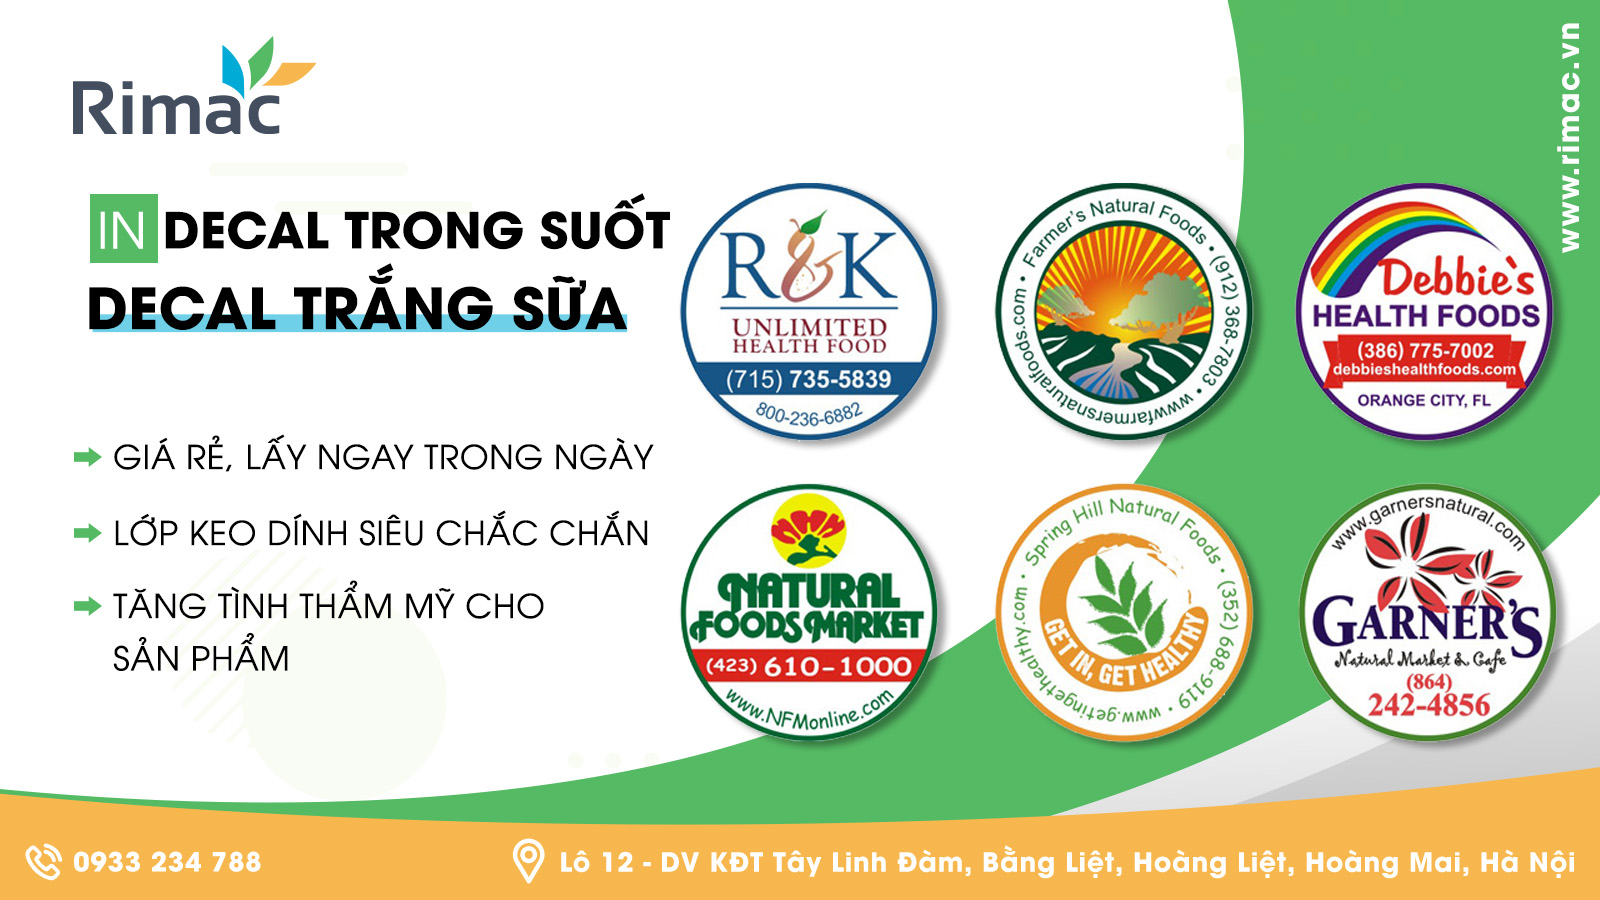 in decal trong, in decal. dịch vụ in decal